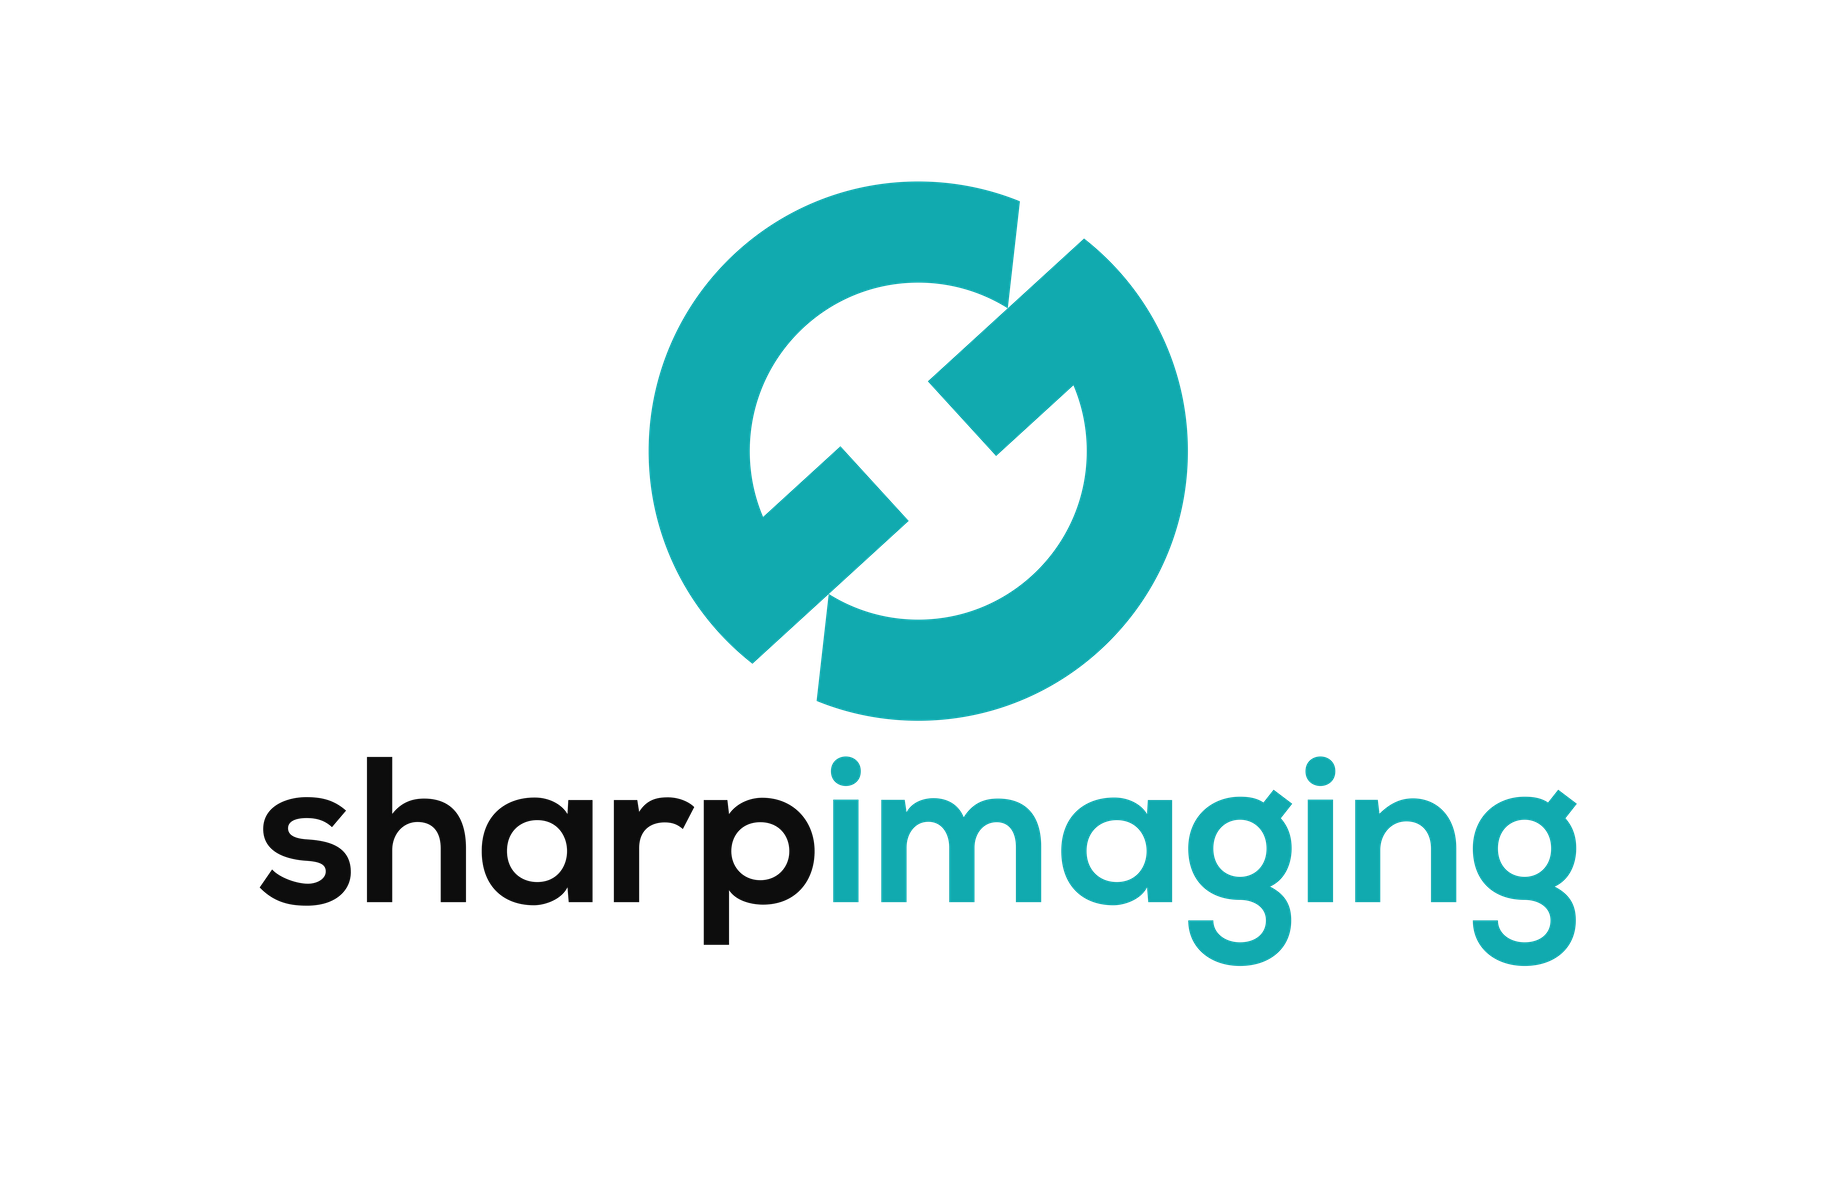 Sharp Imaging